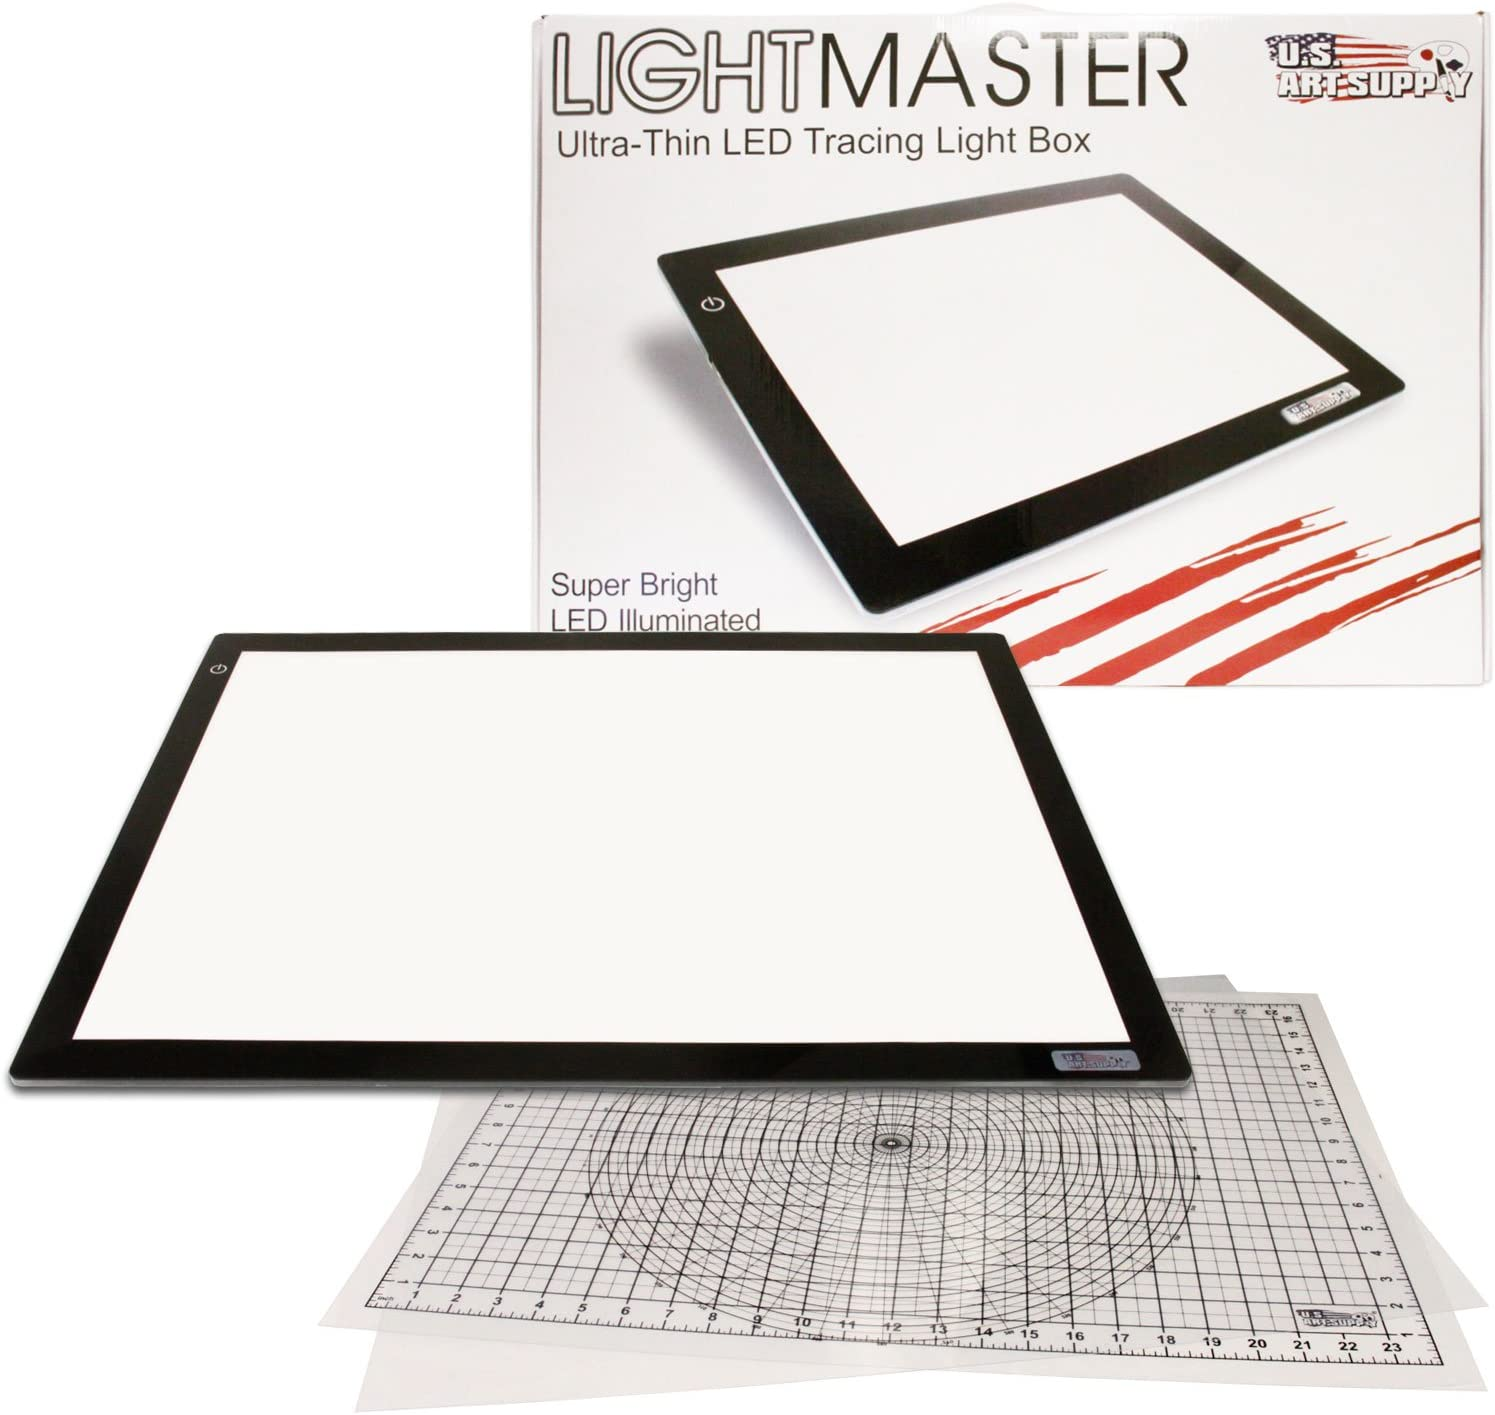 US ART SUPPLY Lightmaster Jumbo 32.5 Diagonal Extra Large(A2) 17x24 LED Lightbox Board- 12-Volt Super-Bright Ultra-Thin 3/8 Profile Light Box Pad with 110V AC Power Adapter & Dimmable LED Lamps. Now Includes for FREE: 1 Measuring Overlay Grid & 1 Circle Te